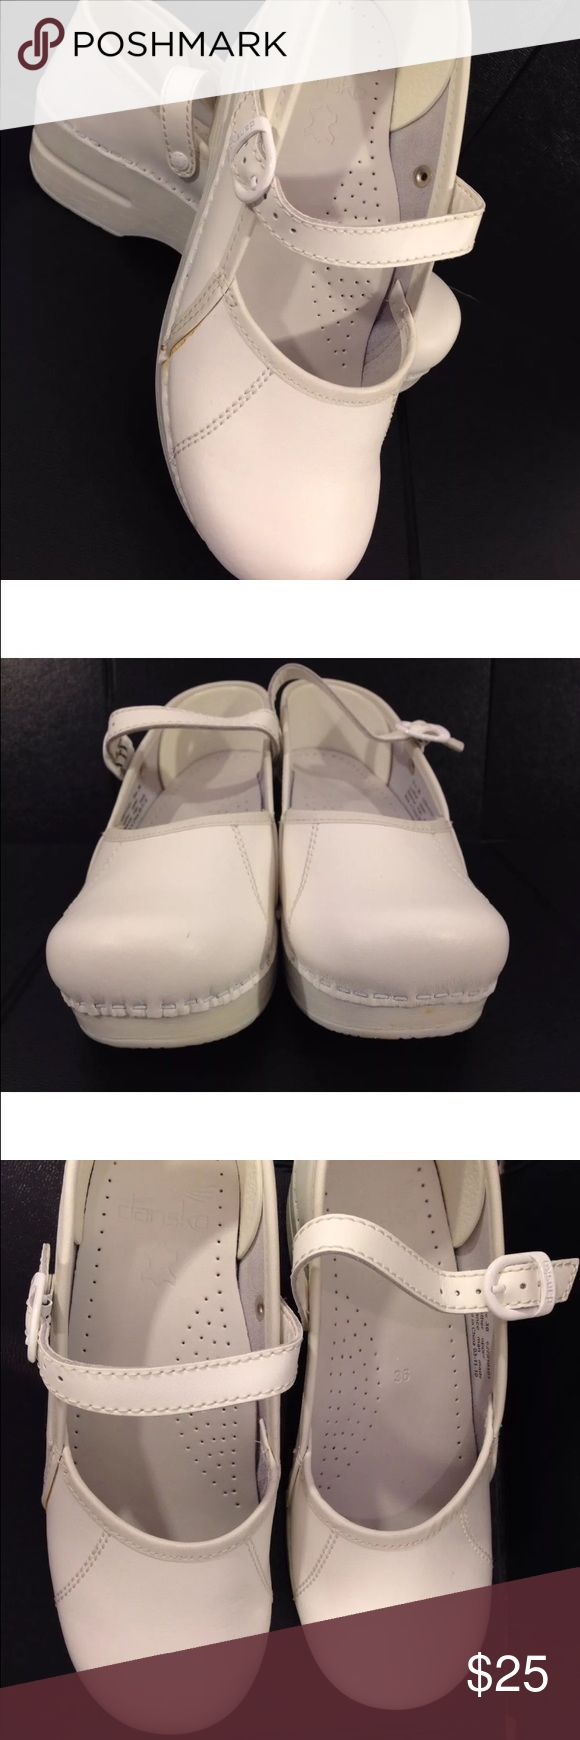 DANSKO Marcelle Womens 36 (5.5-6) WHITE Nurse Clog DANSKO Marcelle Womens 36 (5.5-6) WHITE Mary Jane Professional Nurse Clogs Shoes  I have 2 pair of these shoes up for sale.  This is for set 1.  If you want to buy both sets , I will combine shipping and save you some money ! (Please wait for combined invoice before paying)  This set #1 does have some discoloration on the side as shown in the photo.  I did not try to cover it with white shoe polish or anything but I think you could. Dansko…